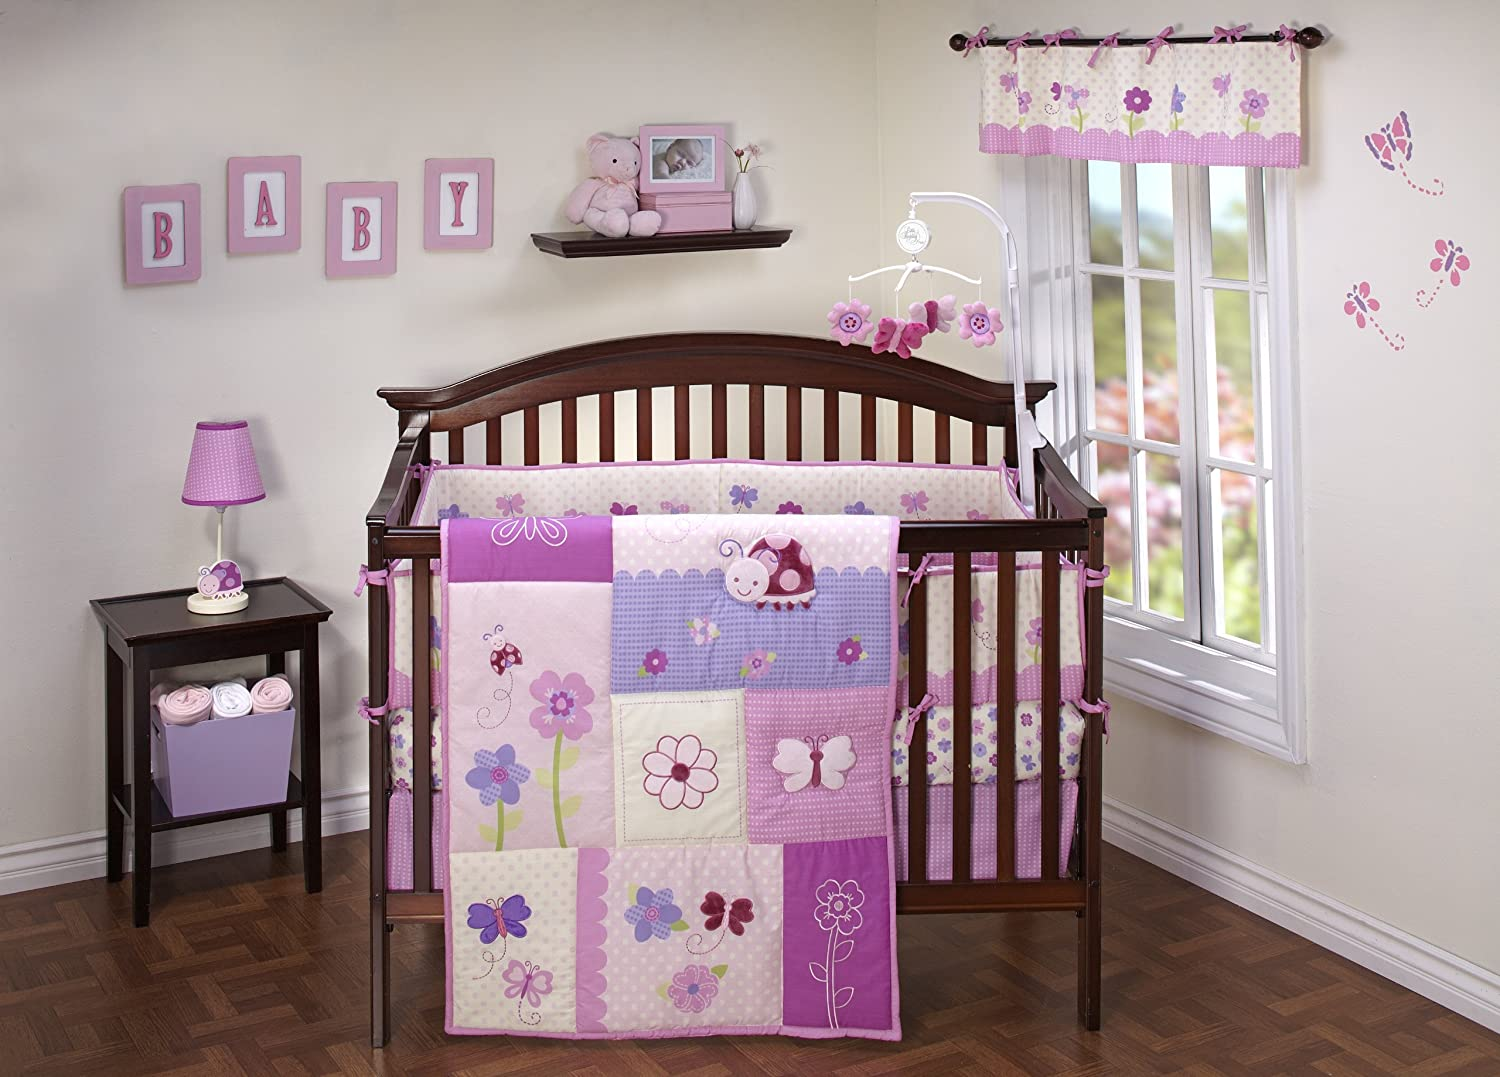 Nojo Little Bedding Little Flowers Crib Bedding